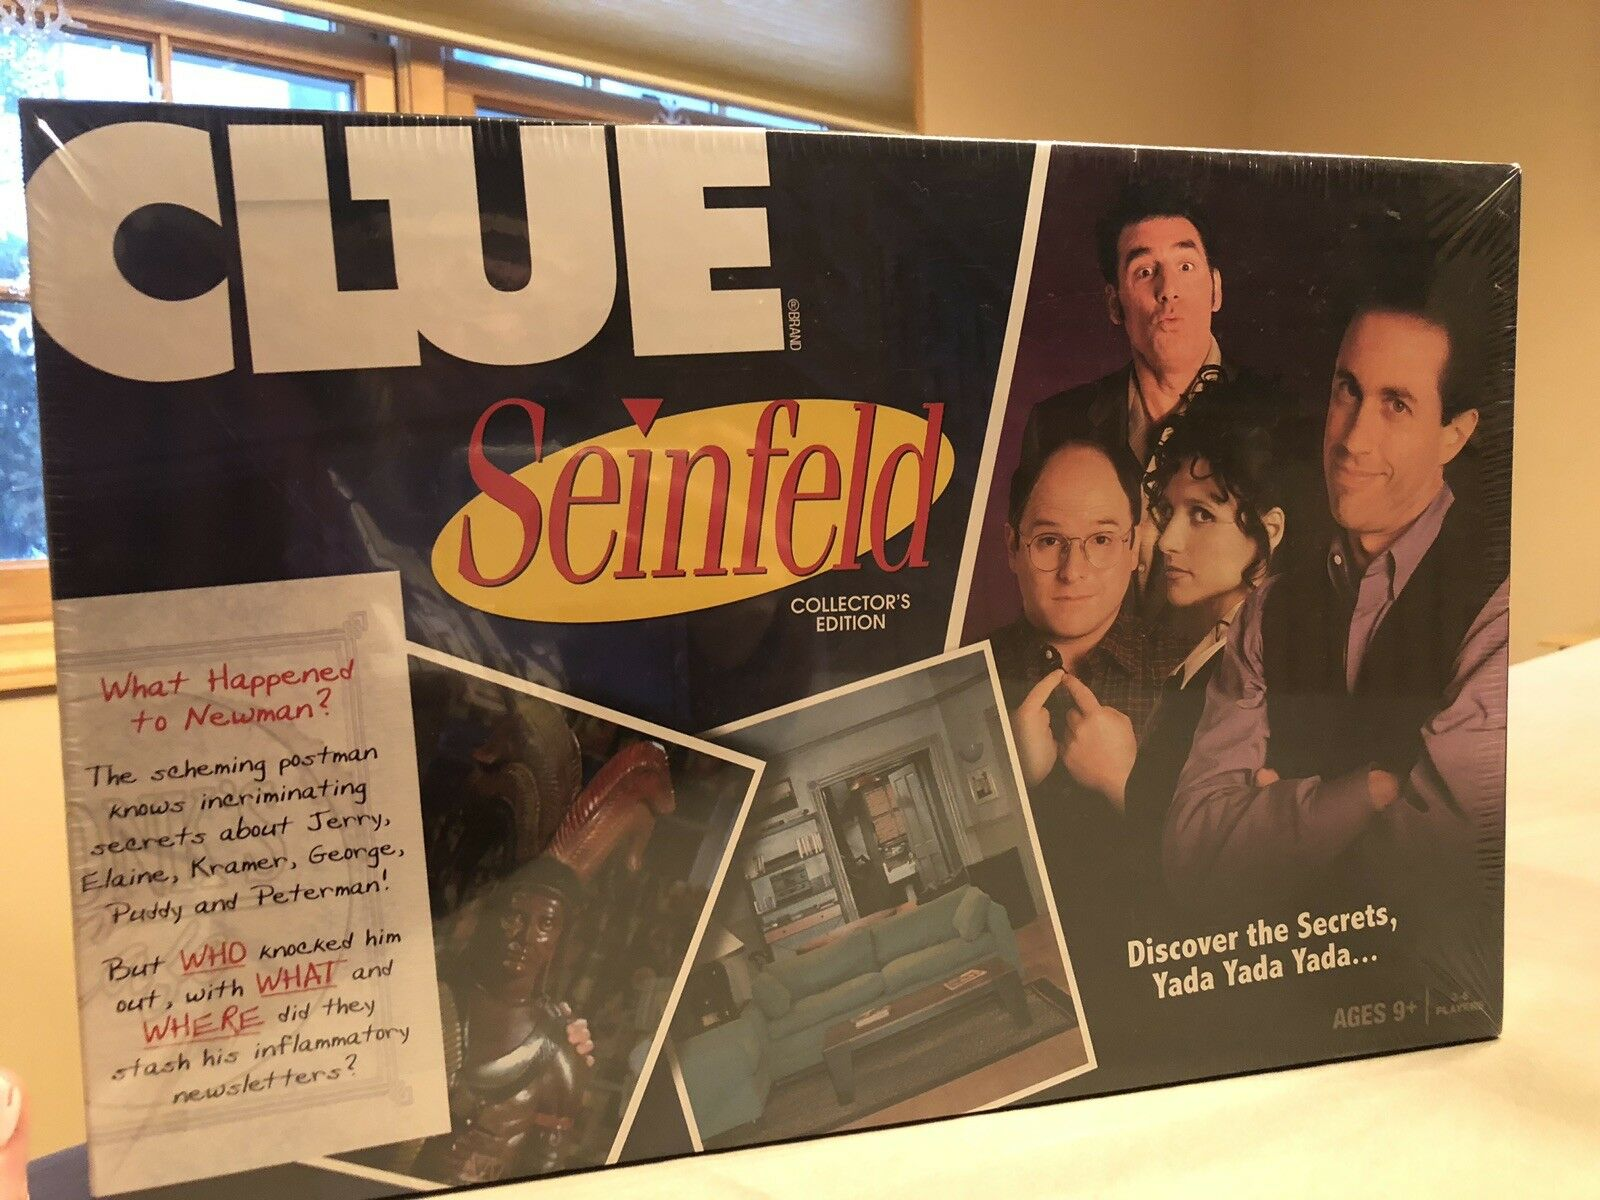 2009 (Hasbro)  CLUE  (SEINFELD)  COLLECTOR'S EDITION  Board Game, NEW  SEALED